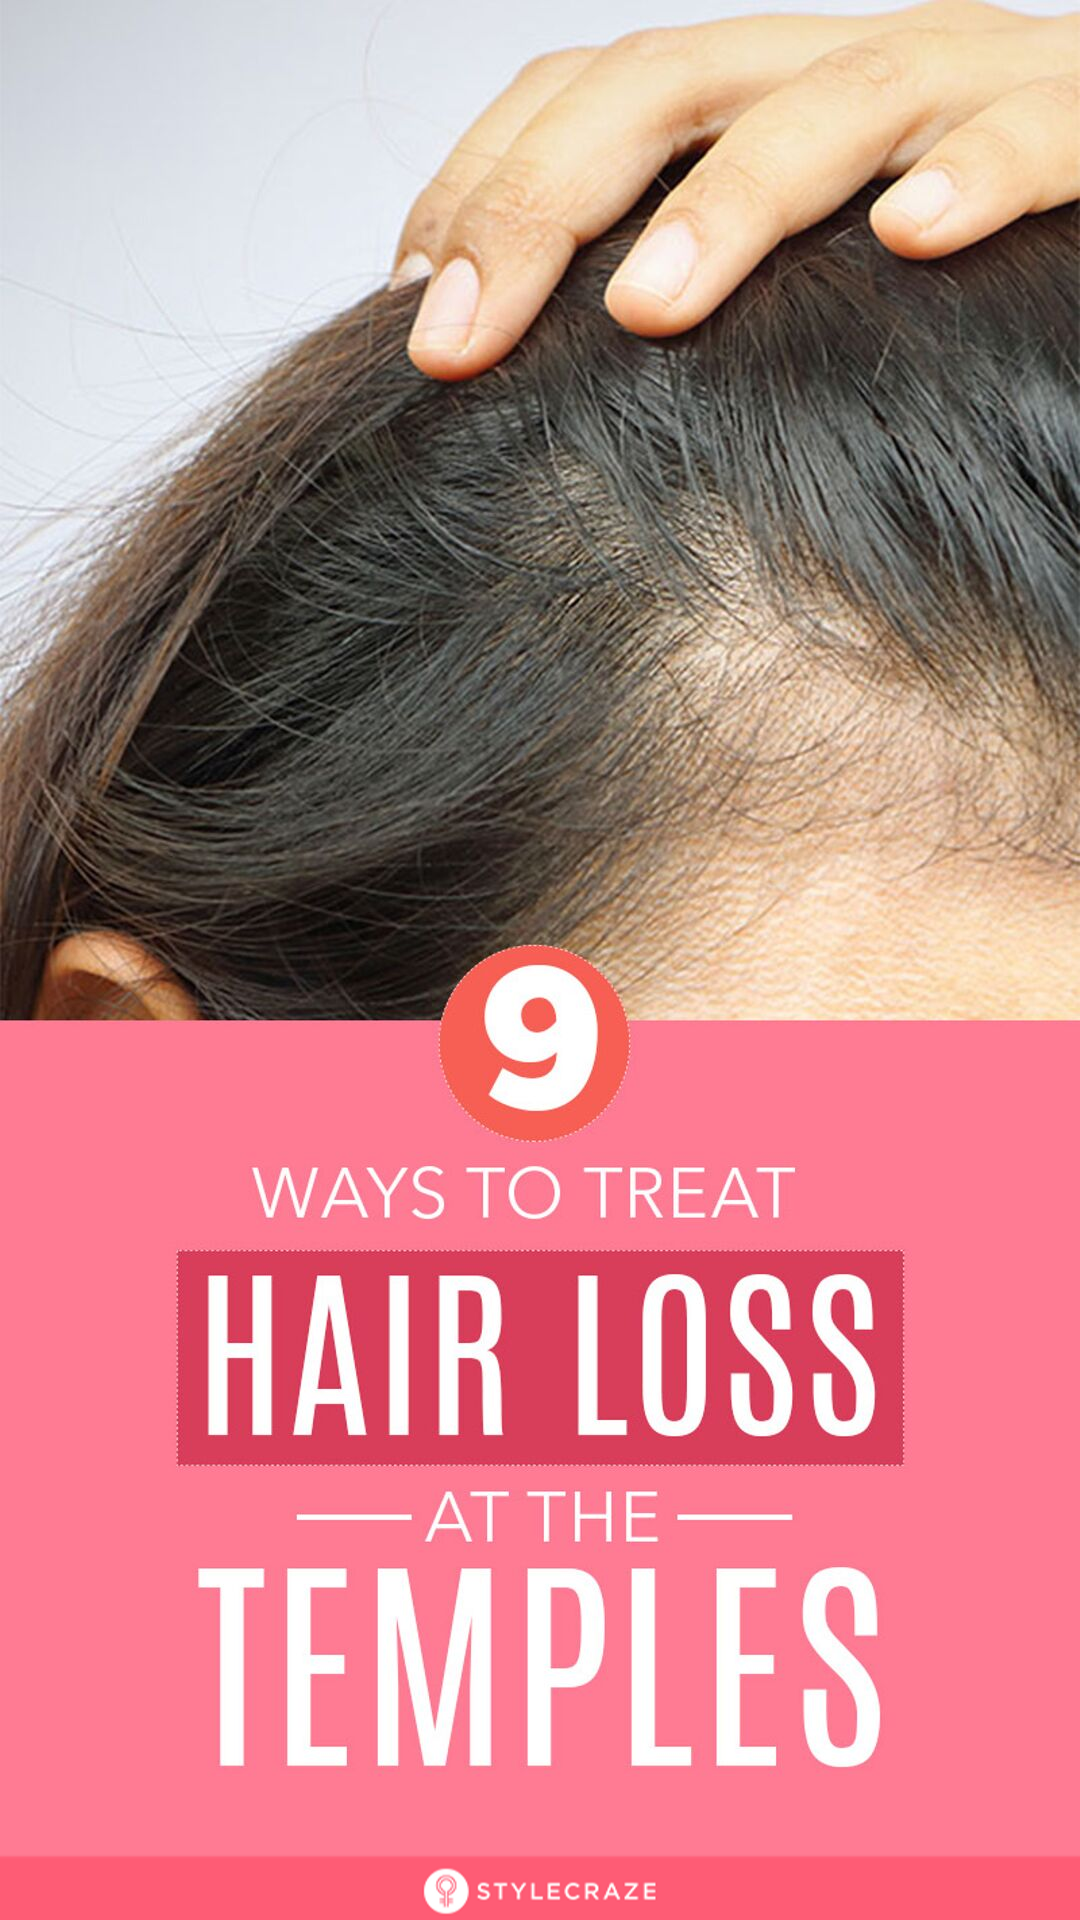 8 Simple Ways To Treat Hair Loss At The Temples Postpartum Hair Loss Temple Hair Loss Hair Loss